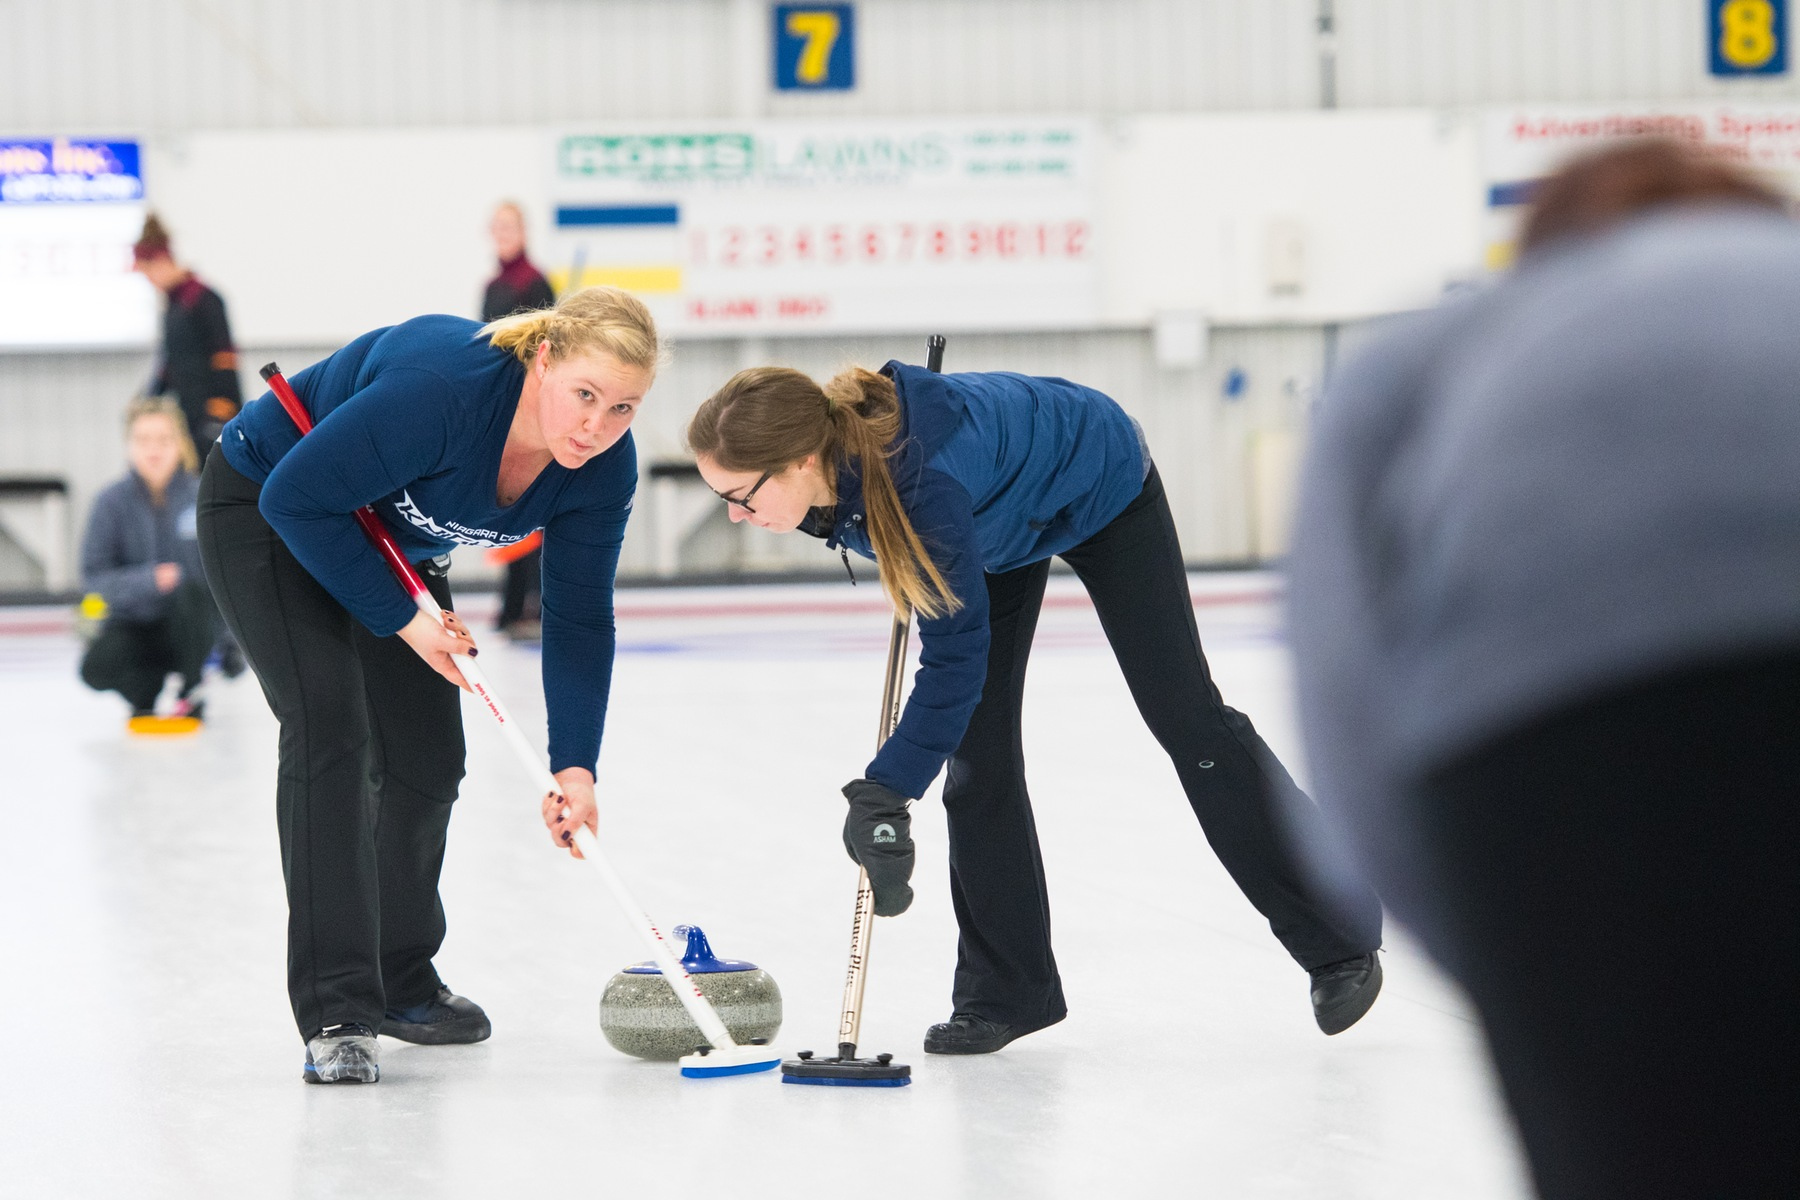 RECAP: Women's curling wrap up 2016-17 season